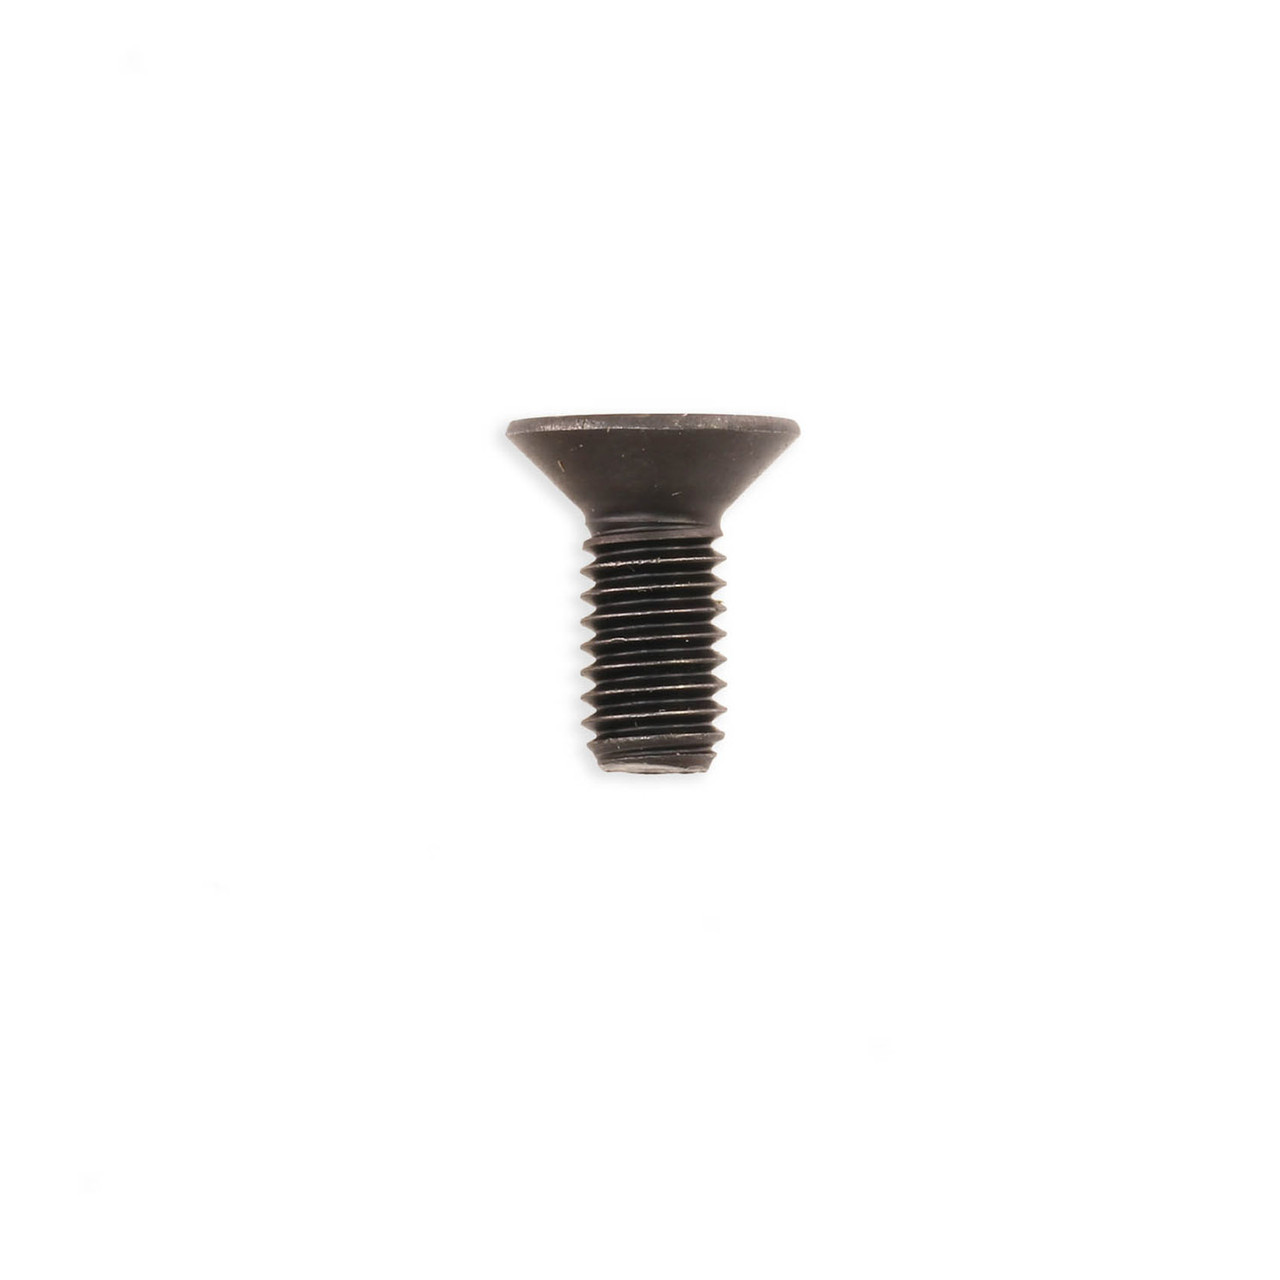 Hurricane Single Long Replacement Screw for the HTC125 Extra Large Dovetail Jaws